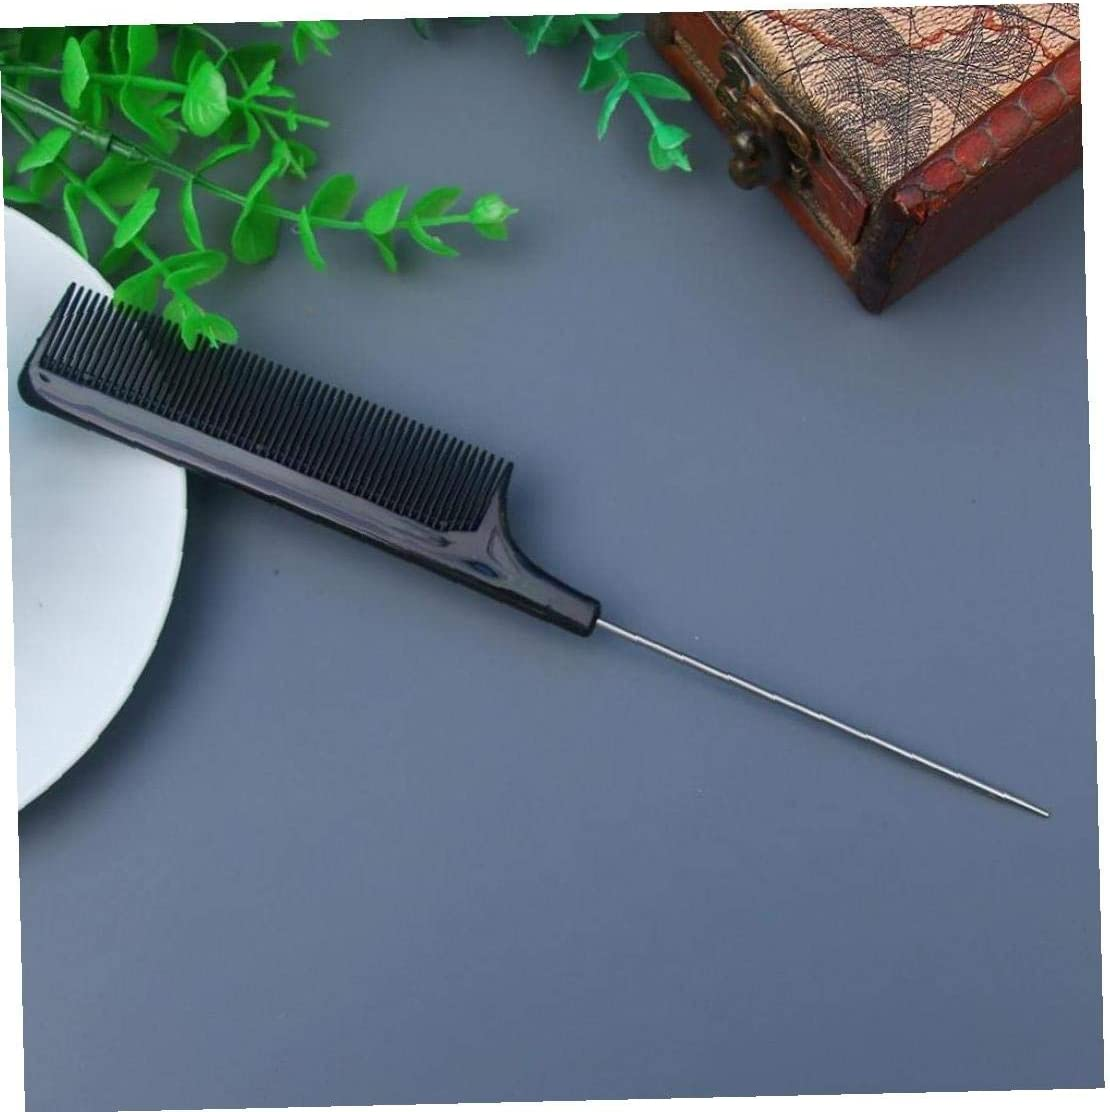 1PC Metal Pin Tail Combs Hairdressers Barbers Black Tail Comb Rat for Styling Hairdressing